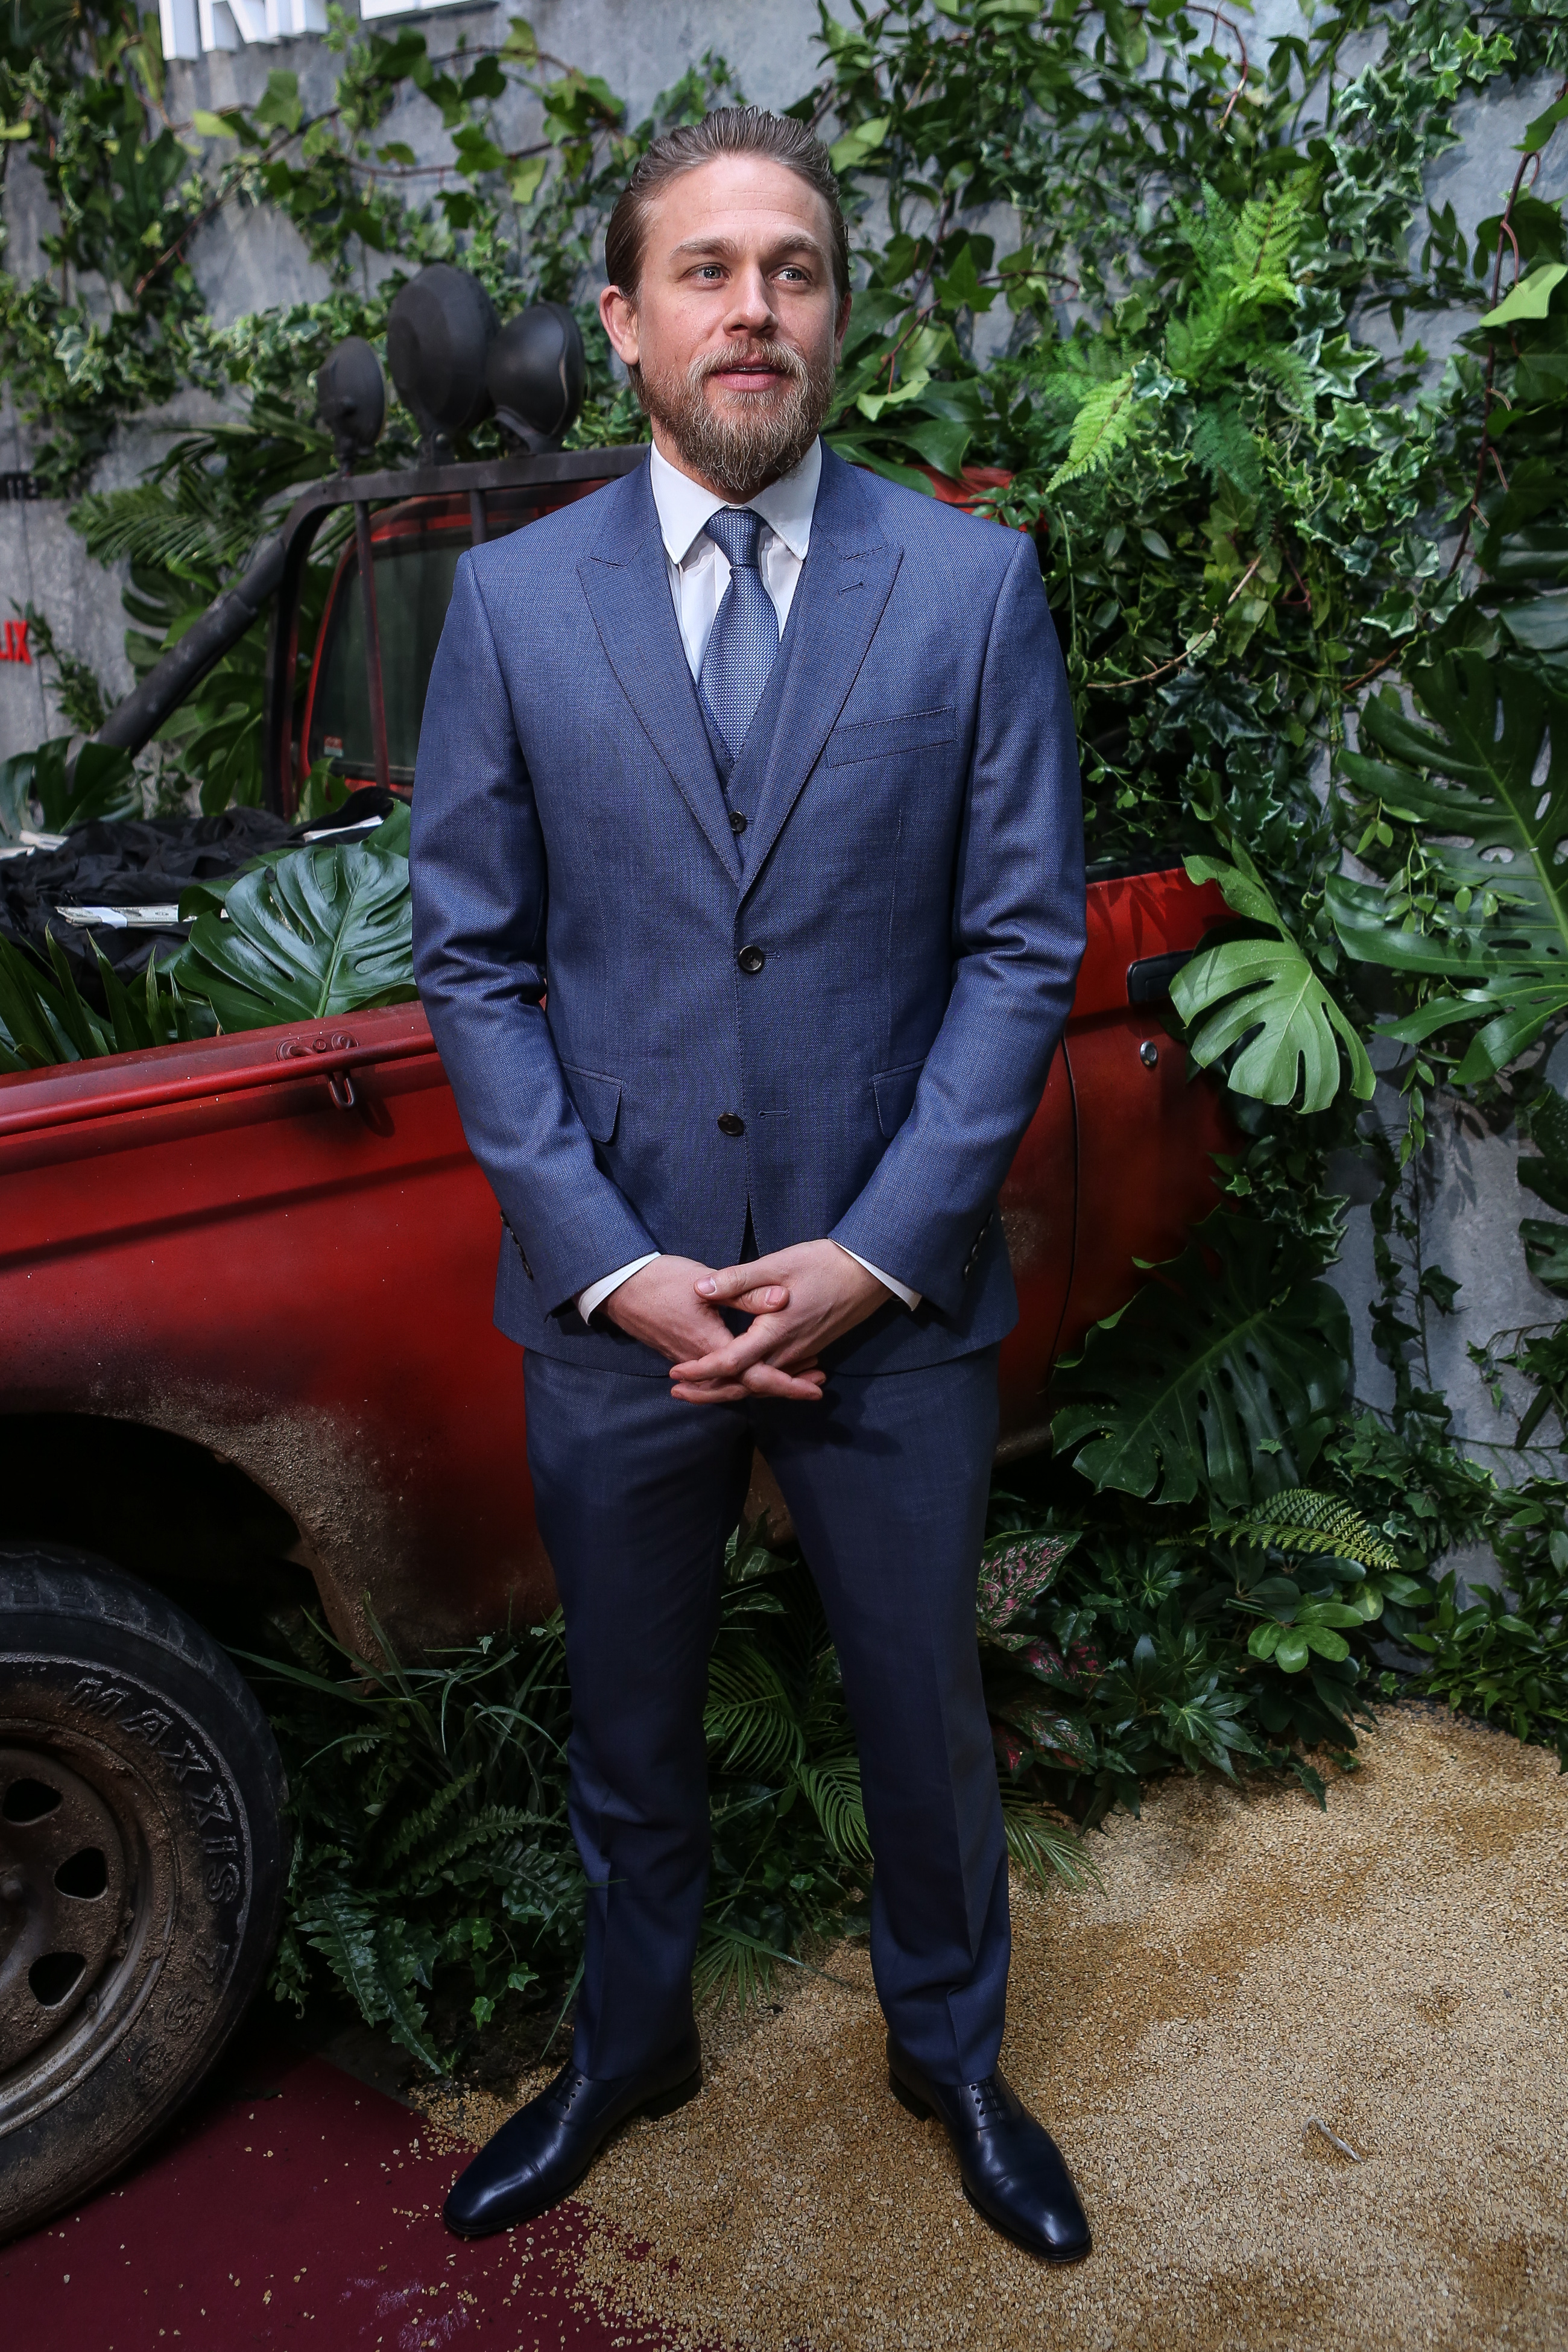 Charlie Hunnam at an event for Triple Frontier (2019)